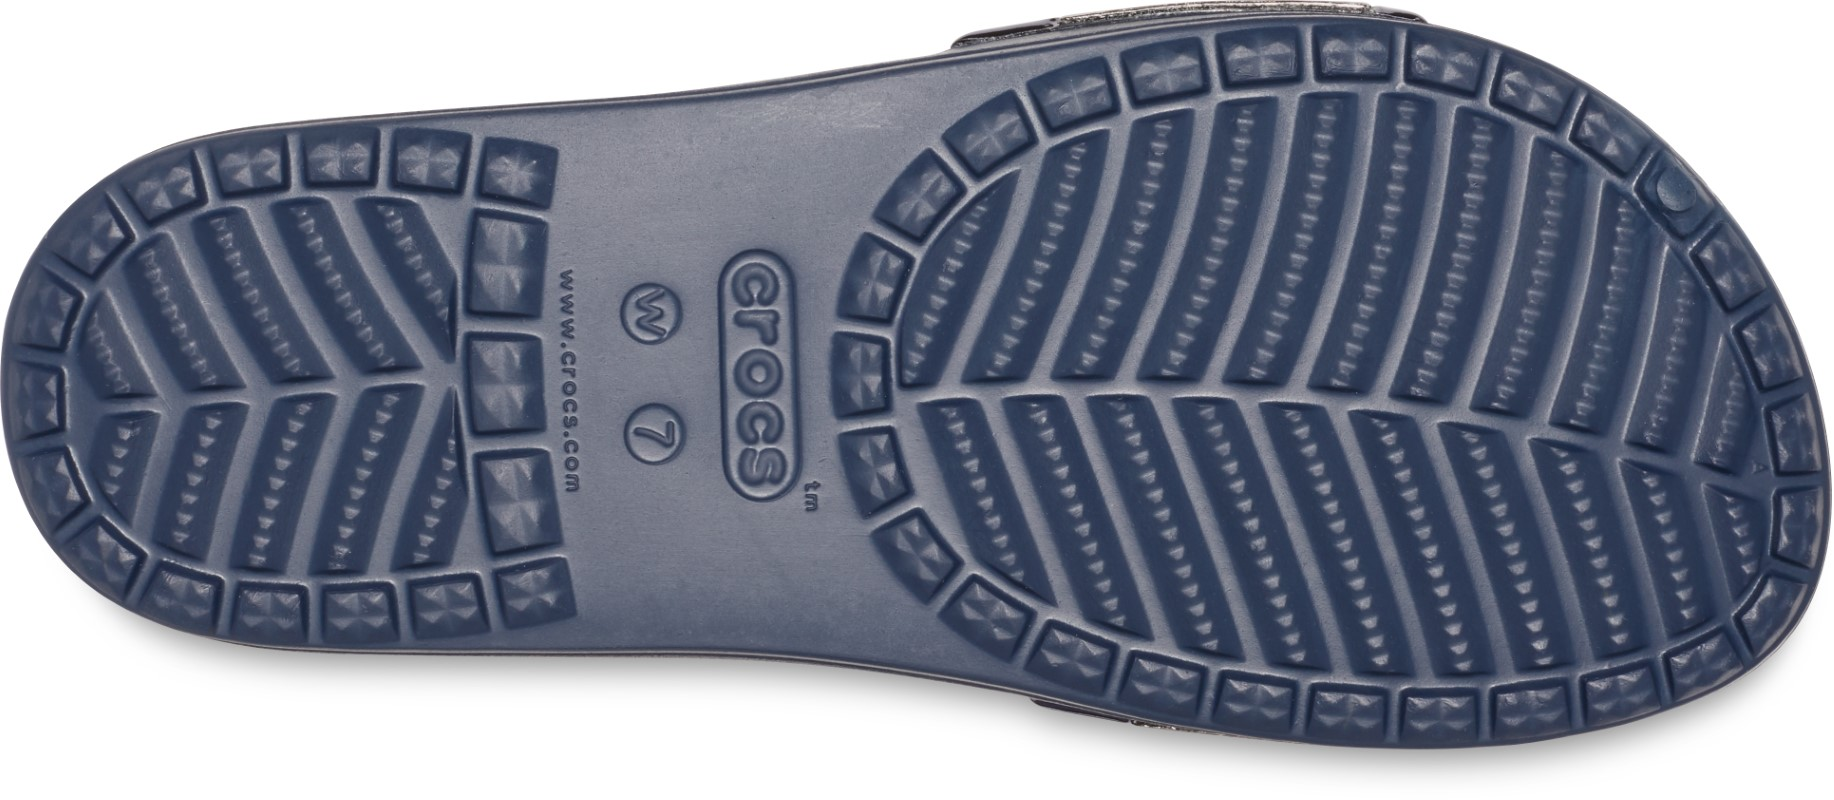 Crocs modré pantofle Sloane Metal Block Slide Multi Navy